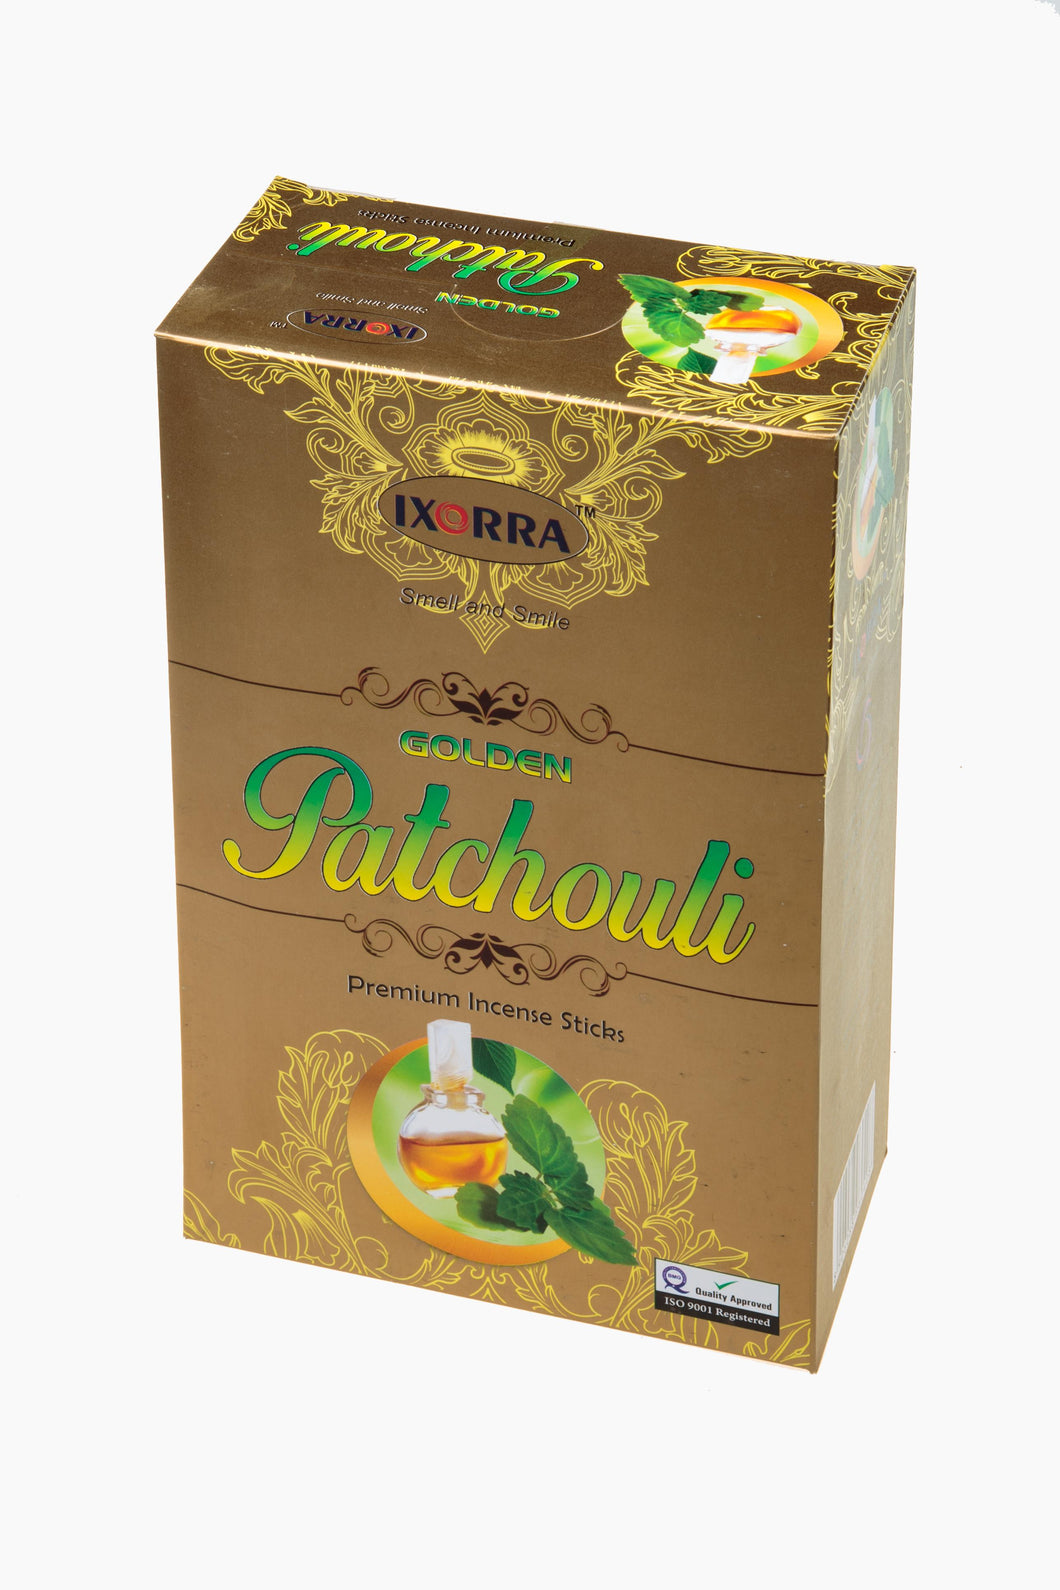 Ixorra Golden Patchouli 20 Sticks